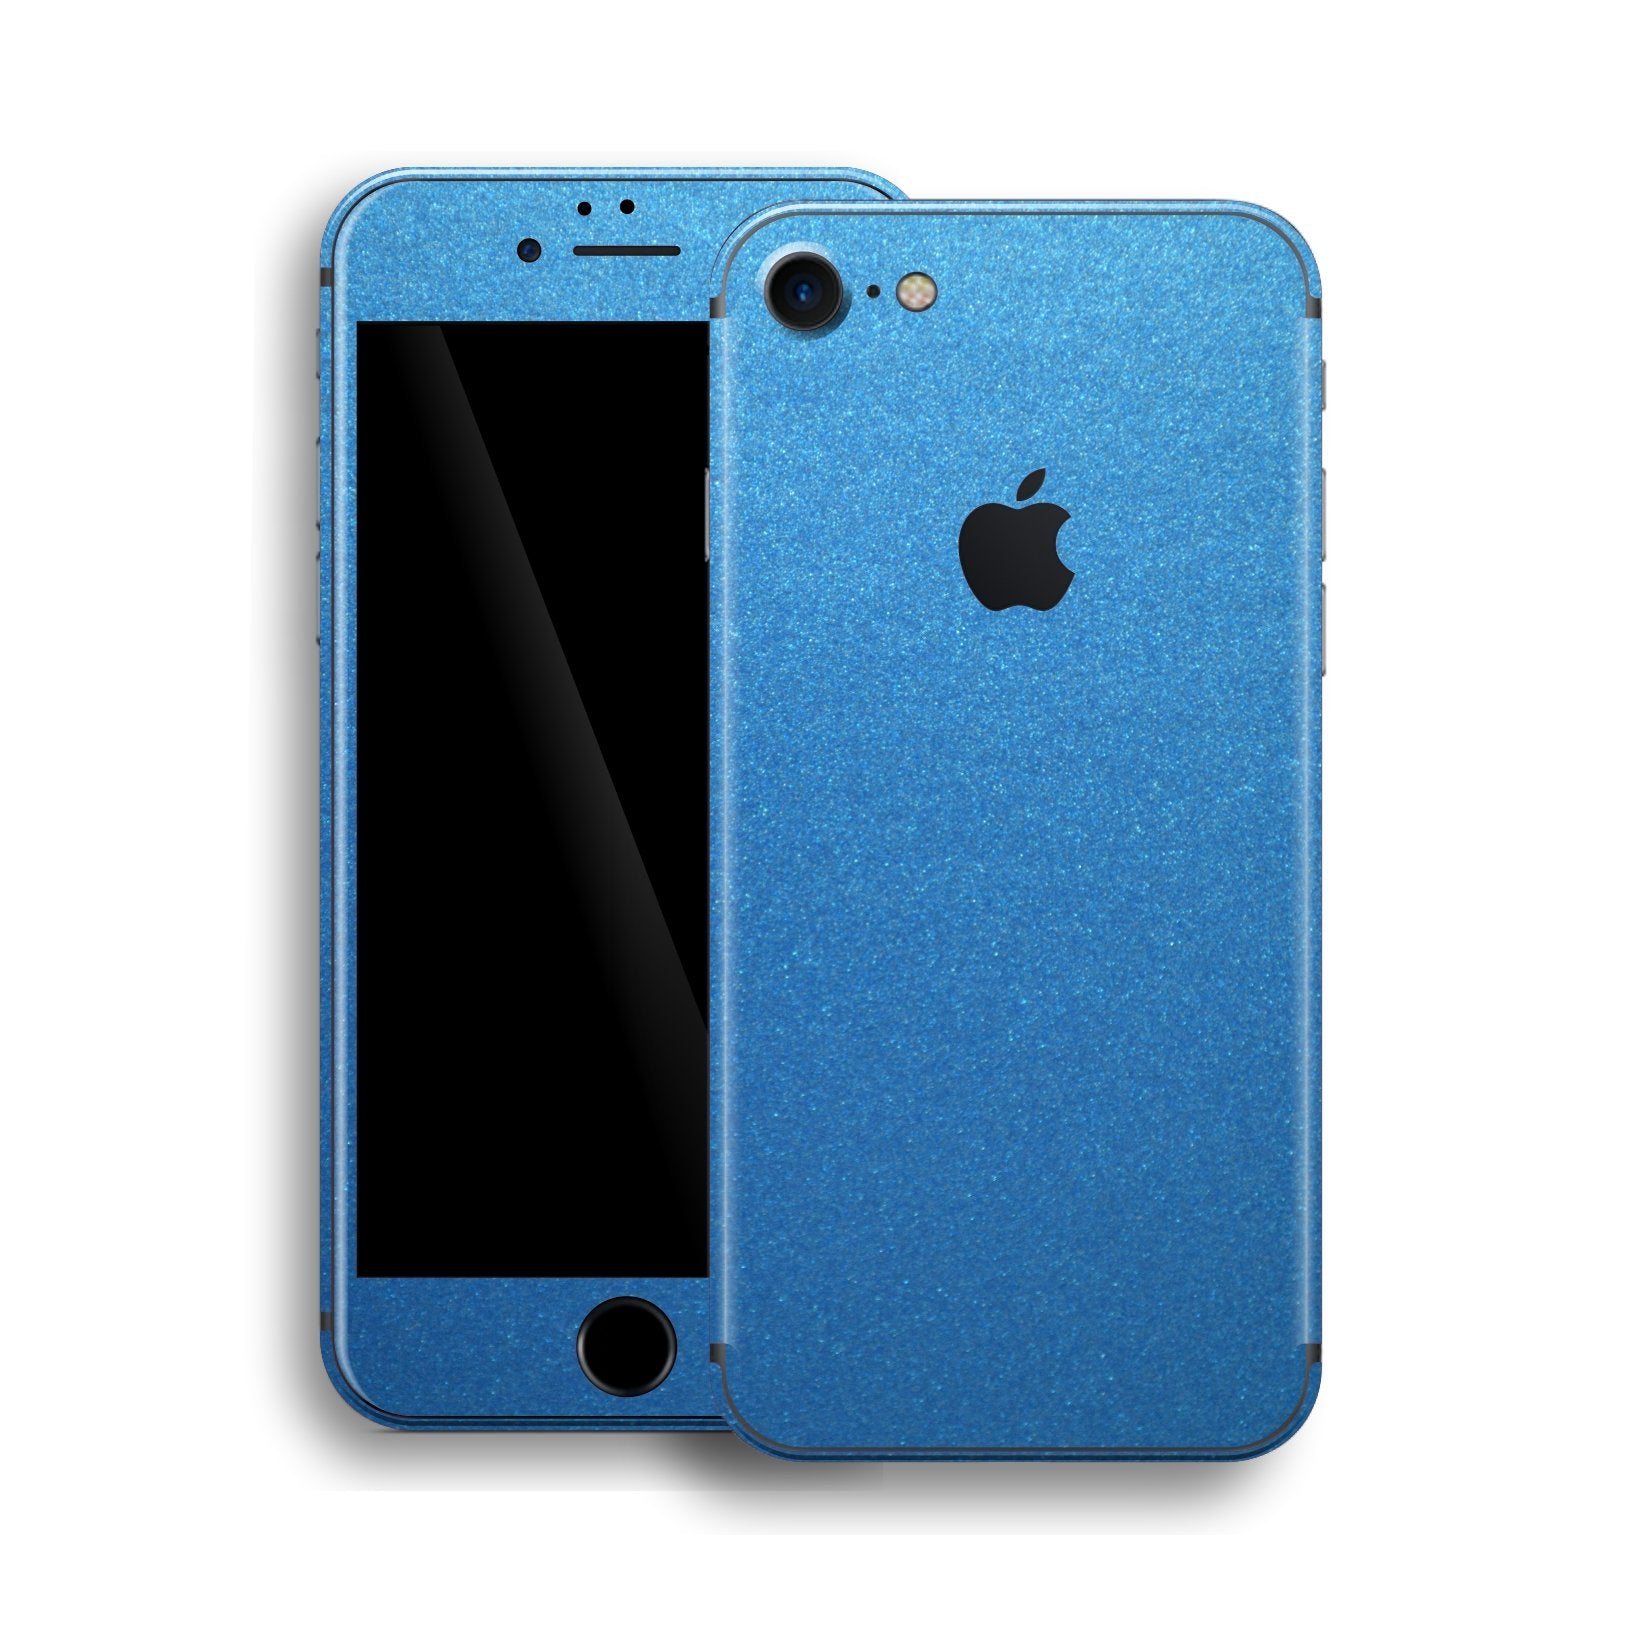 iPhone 8 Azure Blue Glossy Metallic Skin, Wrap, Decal, Protector, Cover by EasySkinz | EasySkinz.com